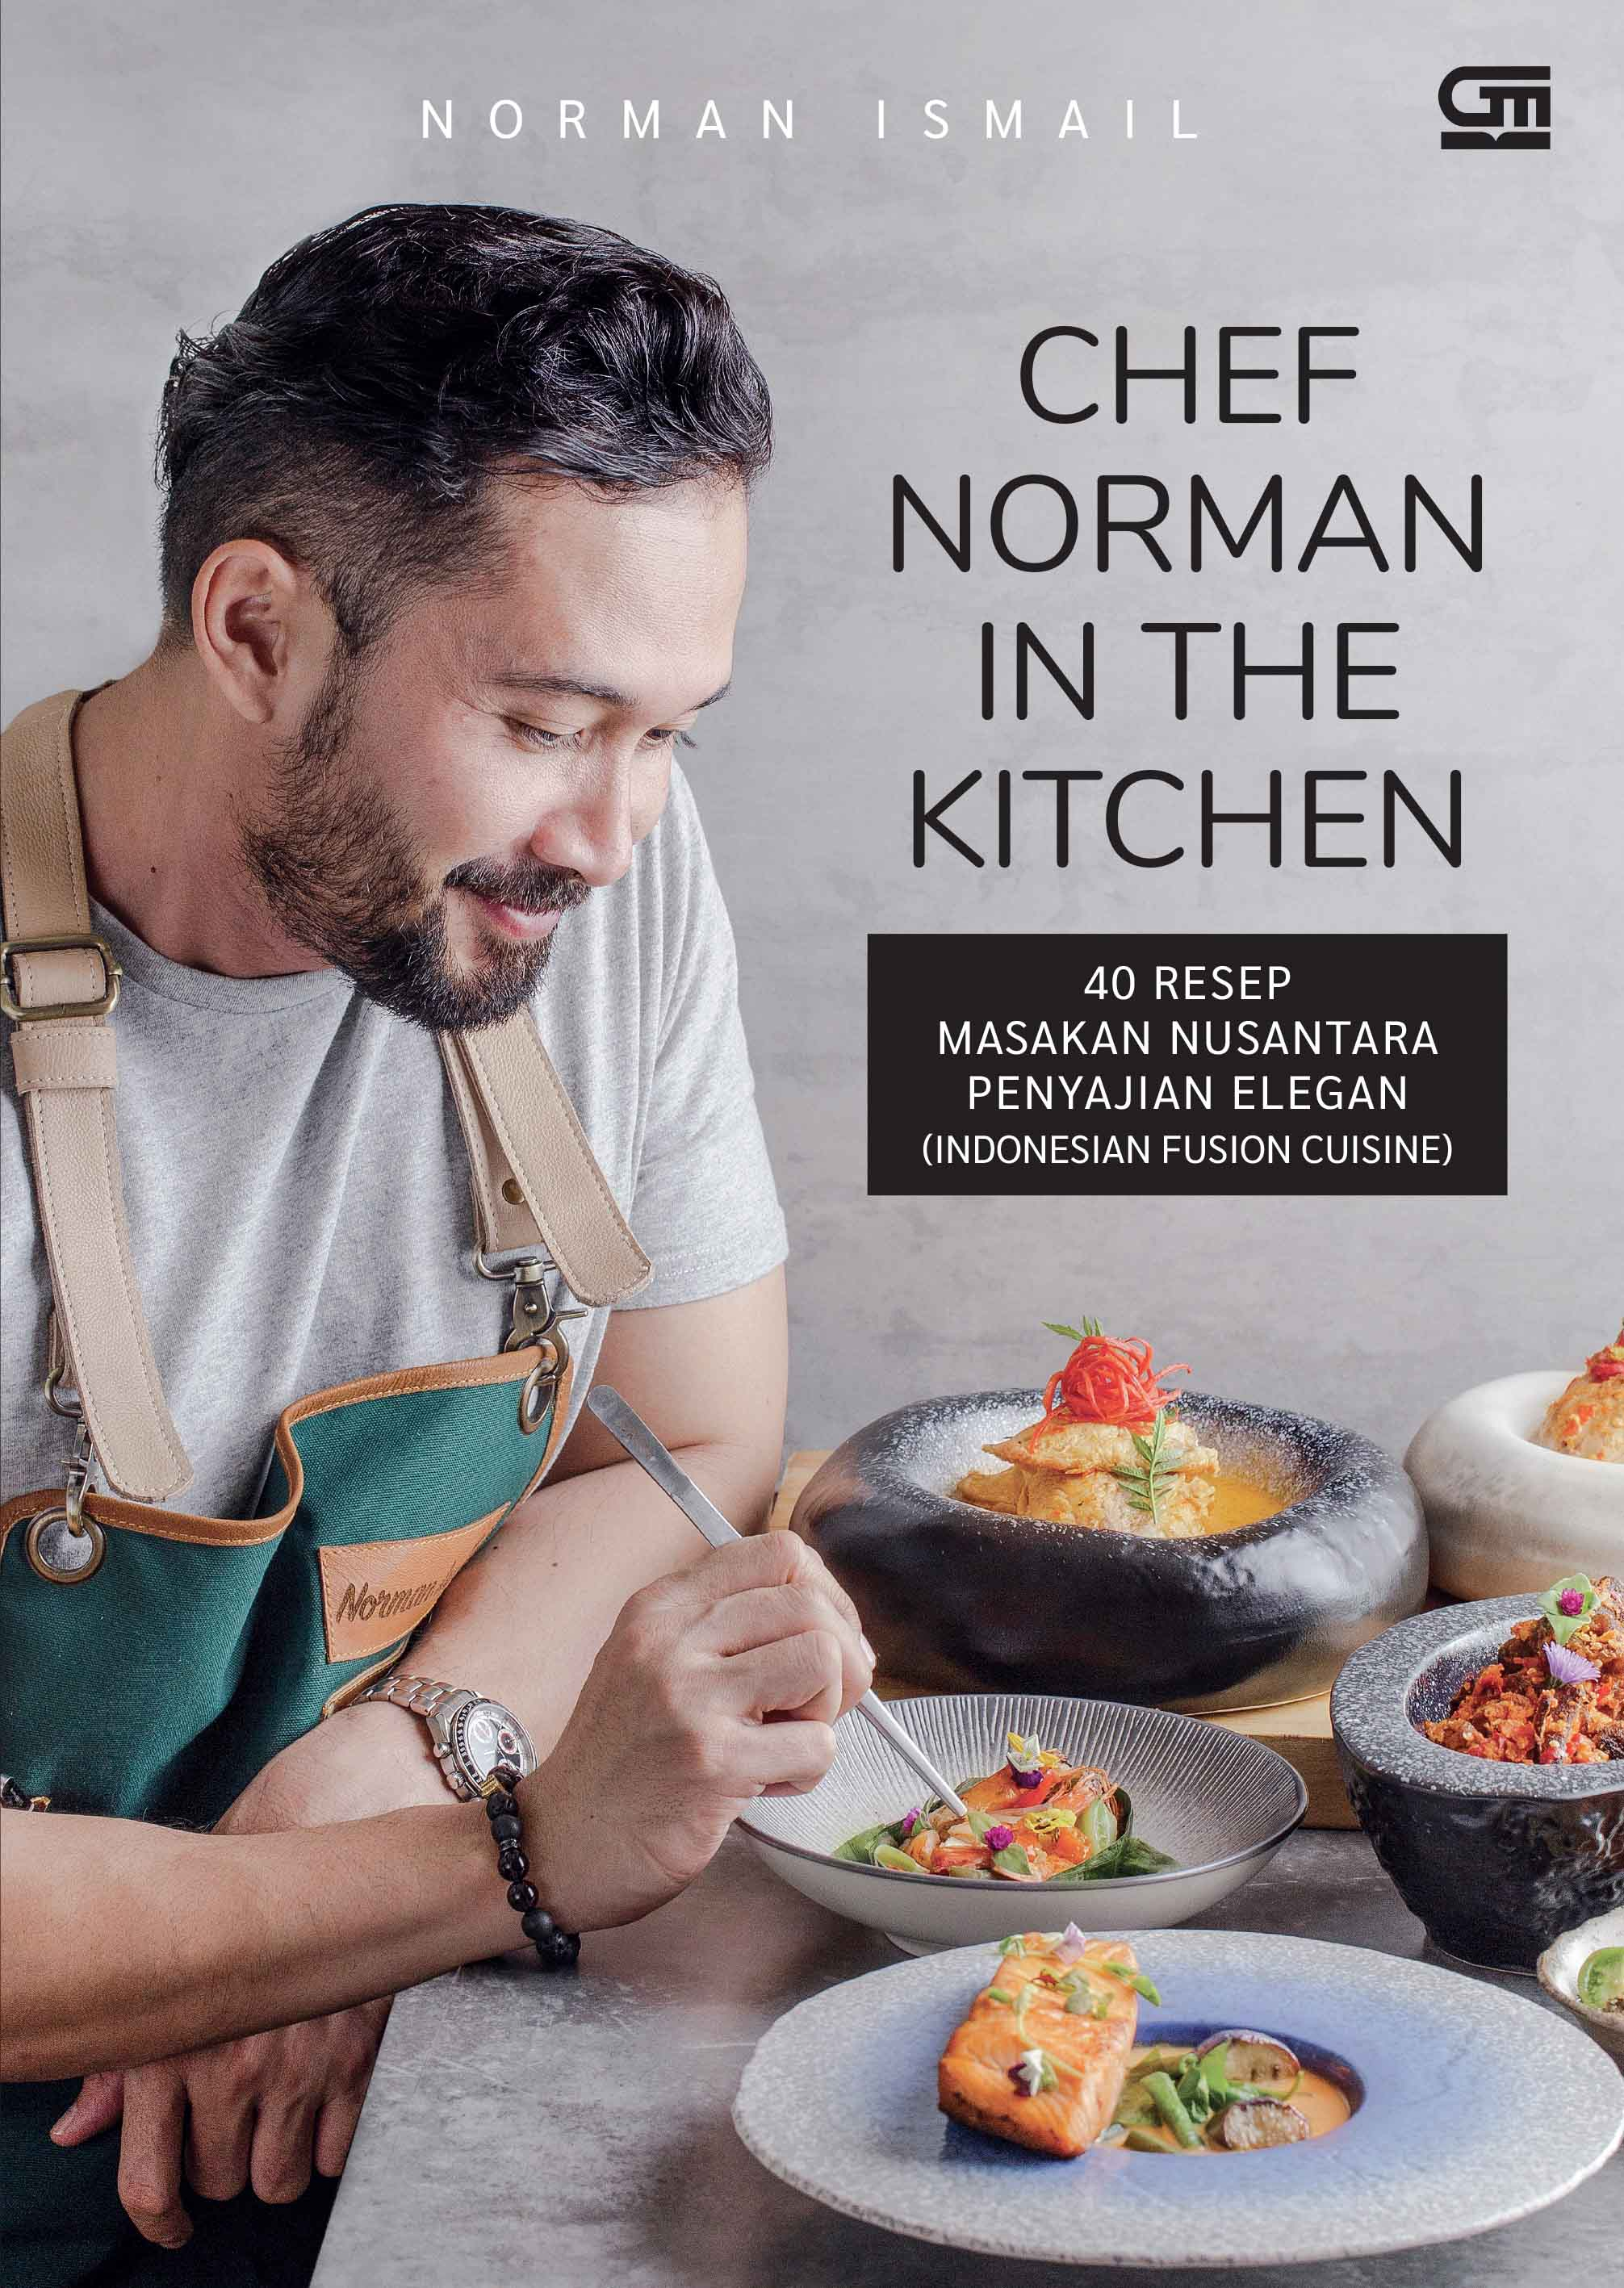 Chef Norman in The Kitchen: 40 Resep Masakan Nusantara Penyajian Elegan